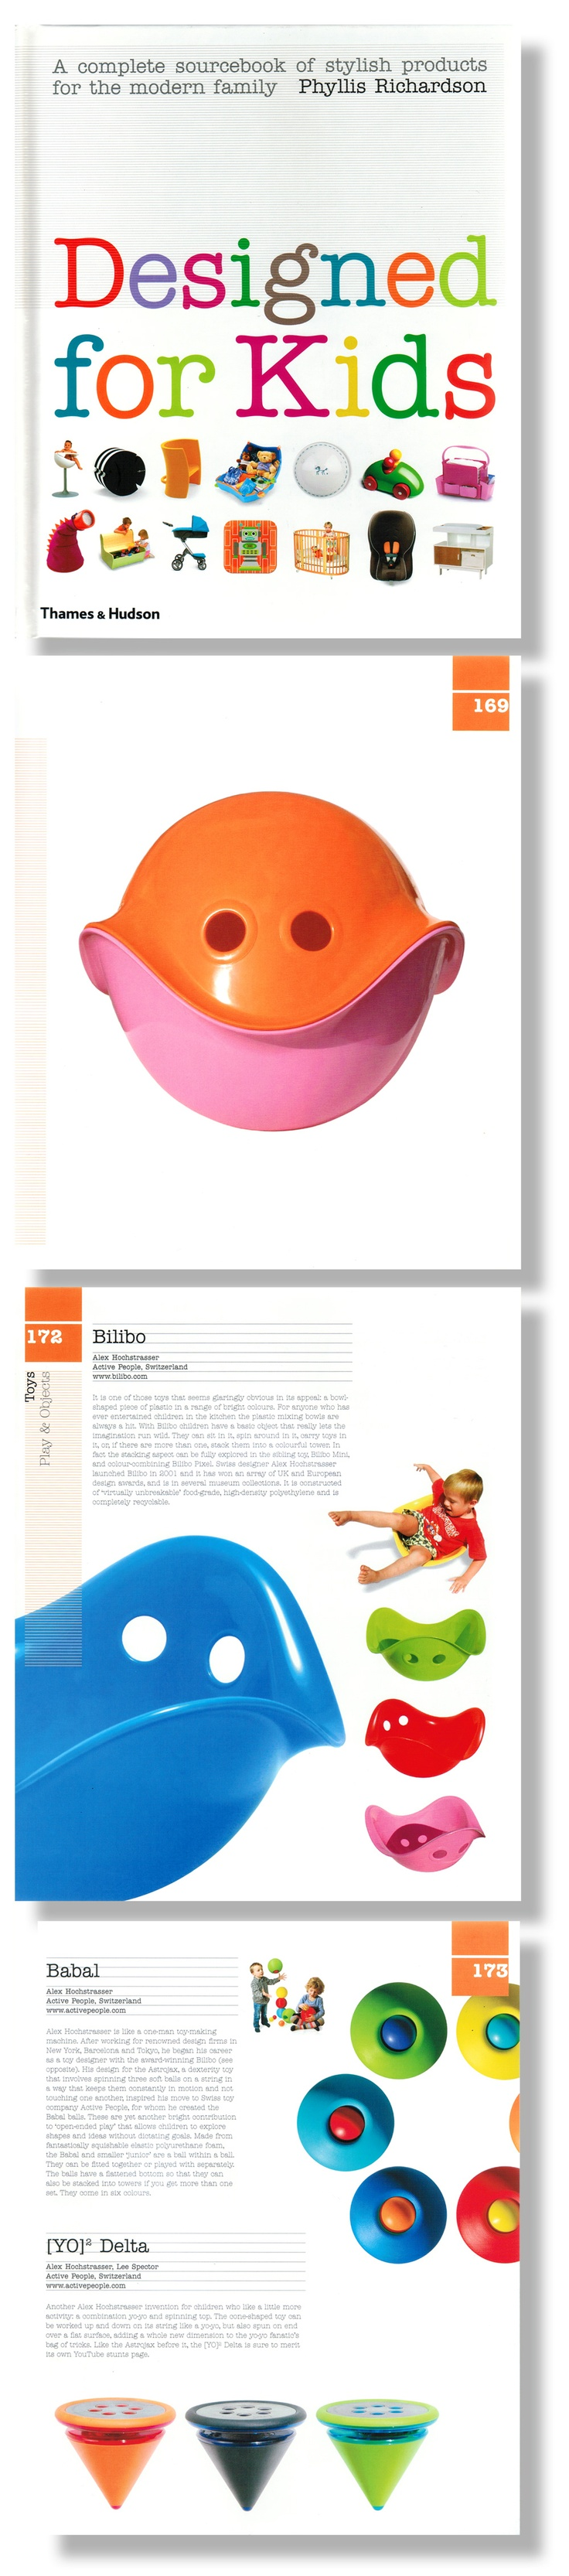 Designed for Kids is a sourcebook of stylish products for the modern family by Phyllis Richardson, featuring Bilibo and several other toys developed by Alex Hochstrasser. #bilibo #kids #design #alex_hochstrasser #moluk